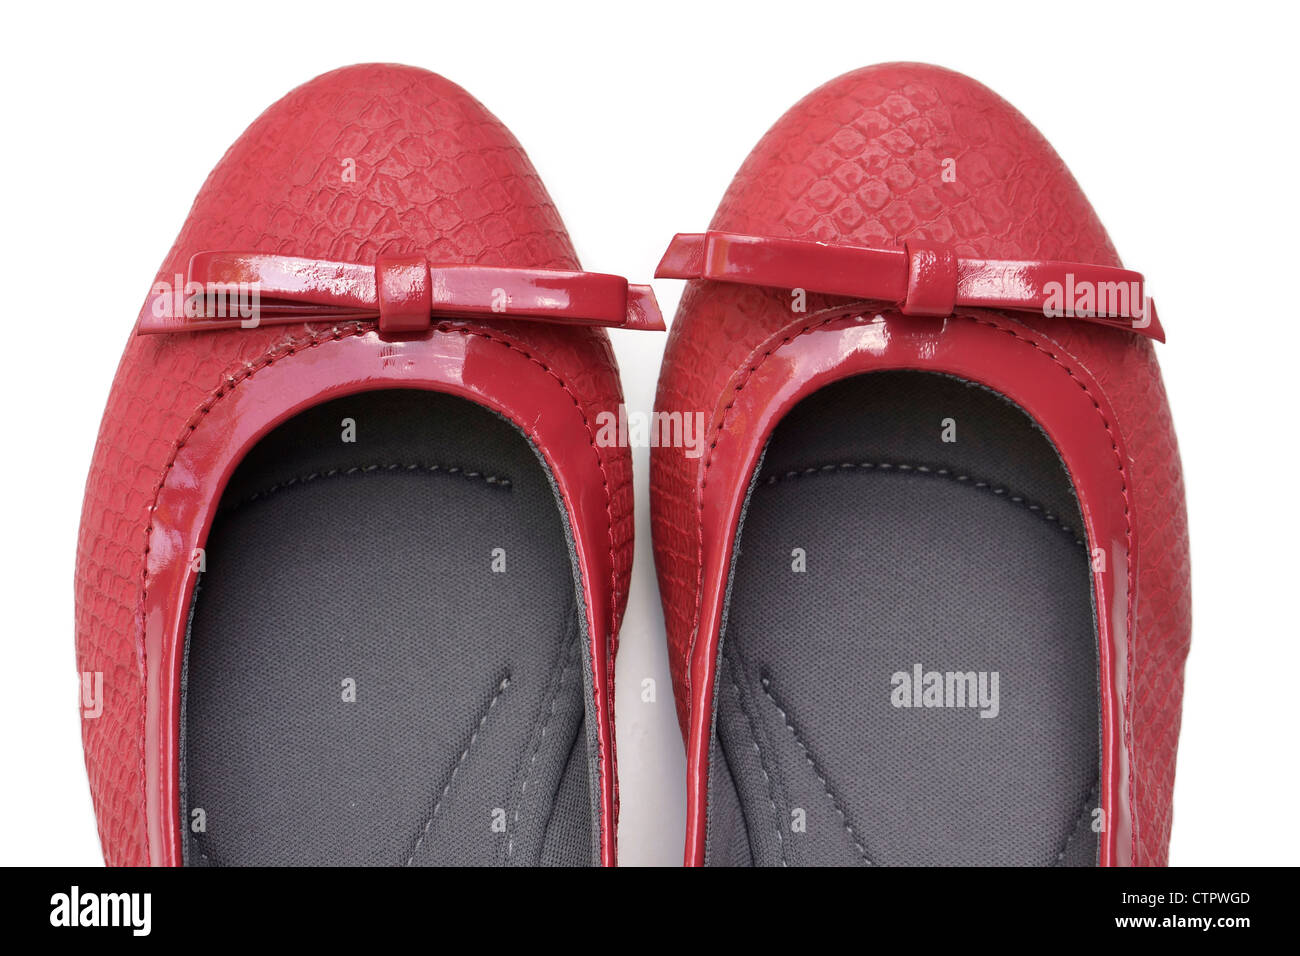 cffbf90d117 Red Slippers Footwear Stock Photos   Red Slippers Footwear Stock ...